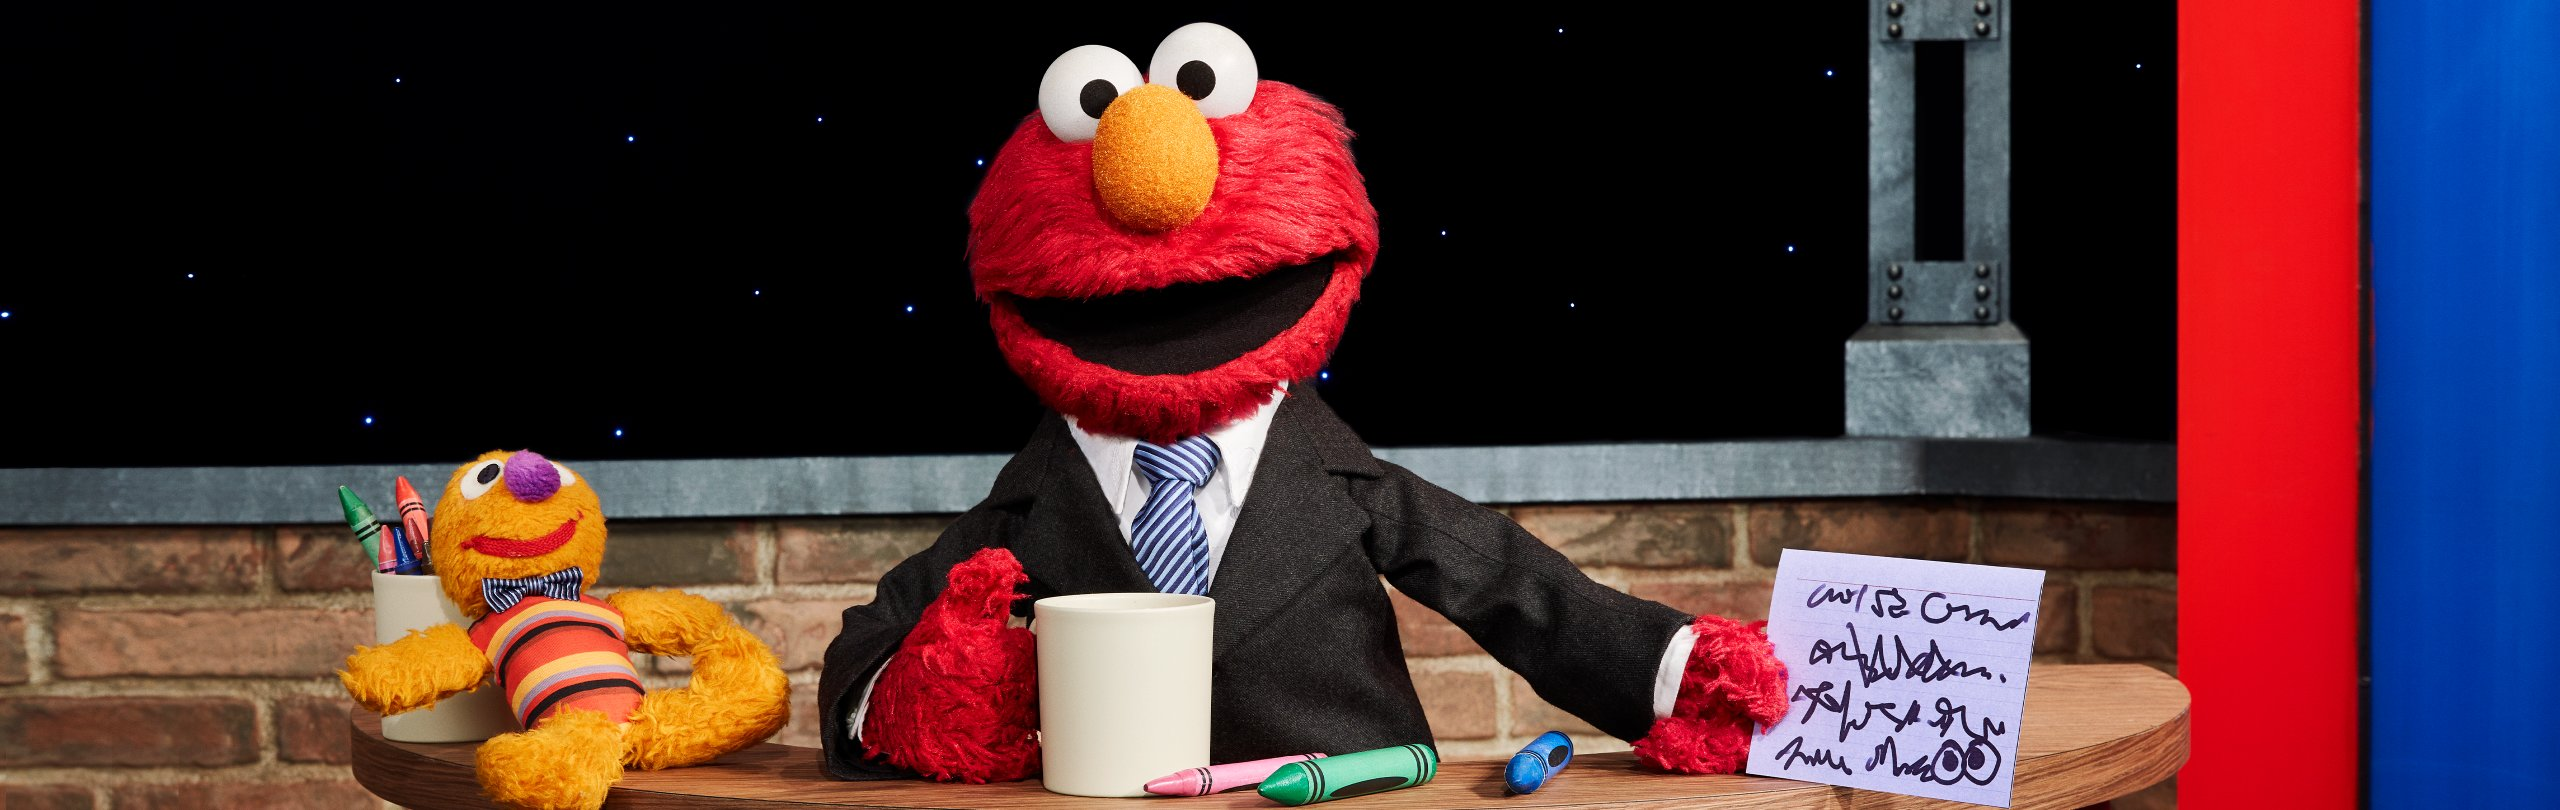 Elmo is wearing a suit and sitting at a desk with a mug of coffee